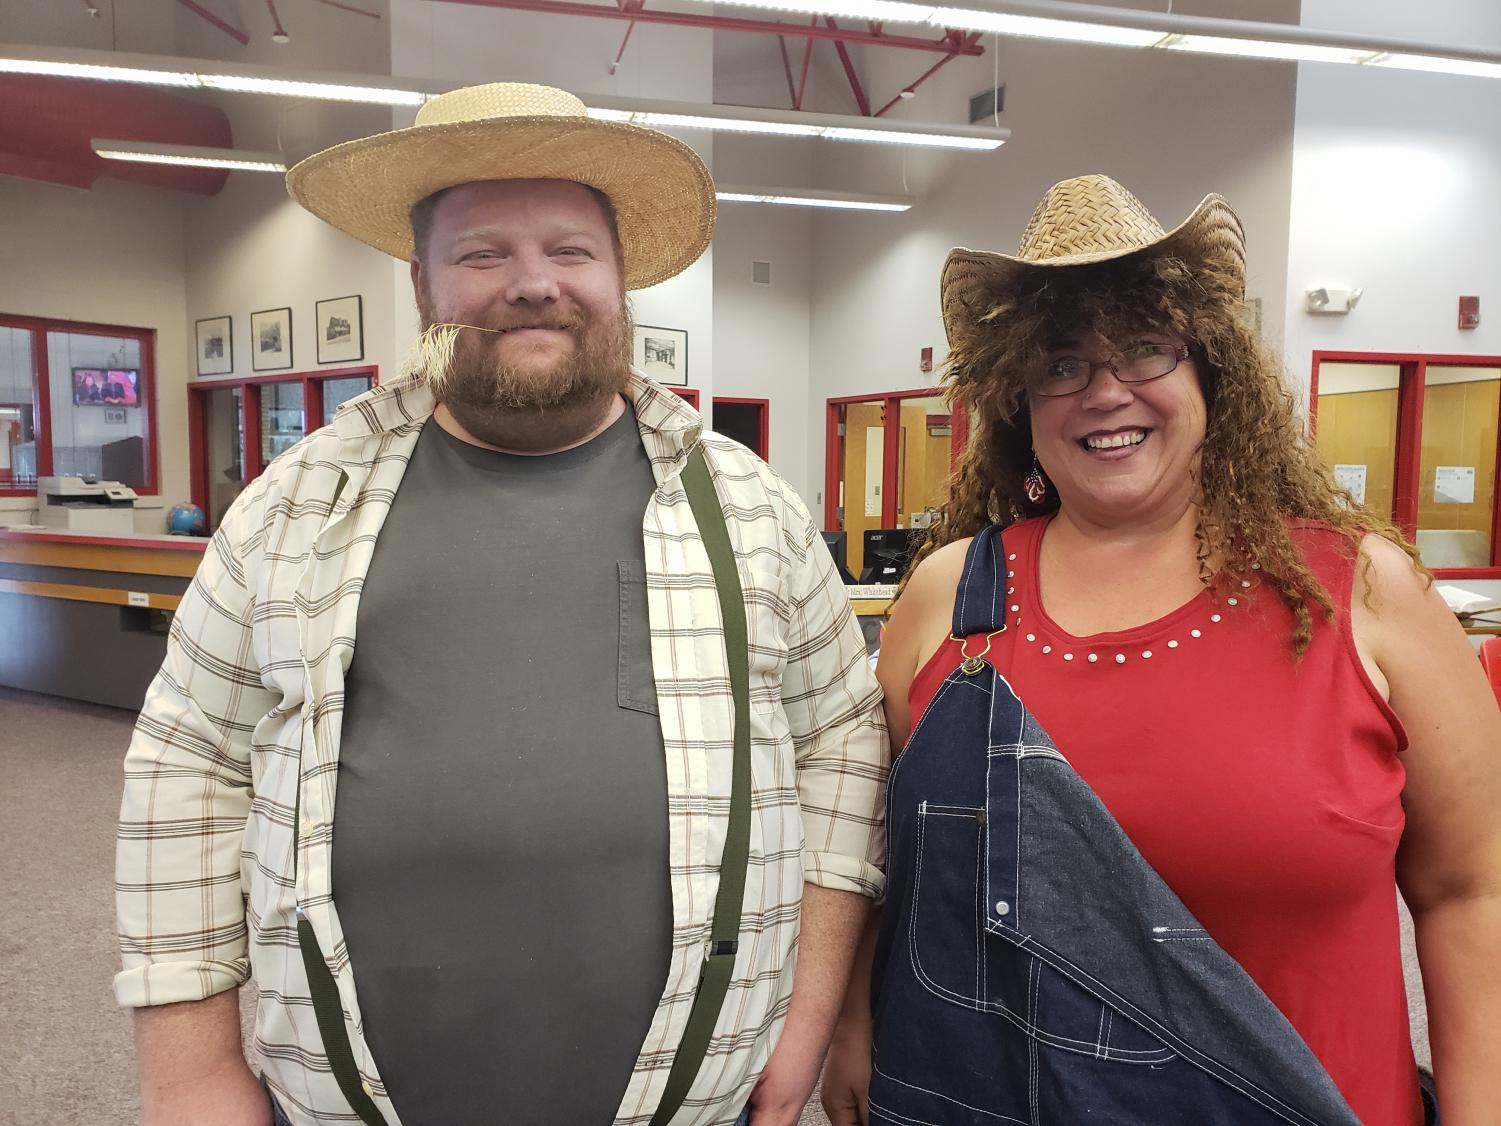 Mr. Sanford and Ms. Fleischmann sport their